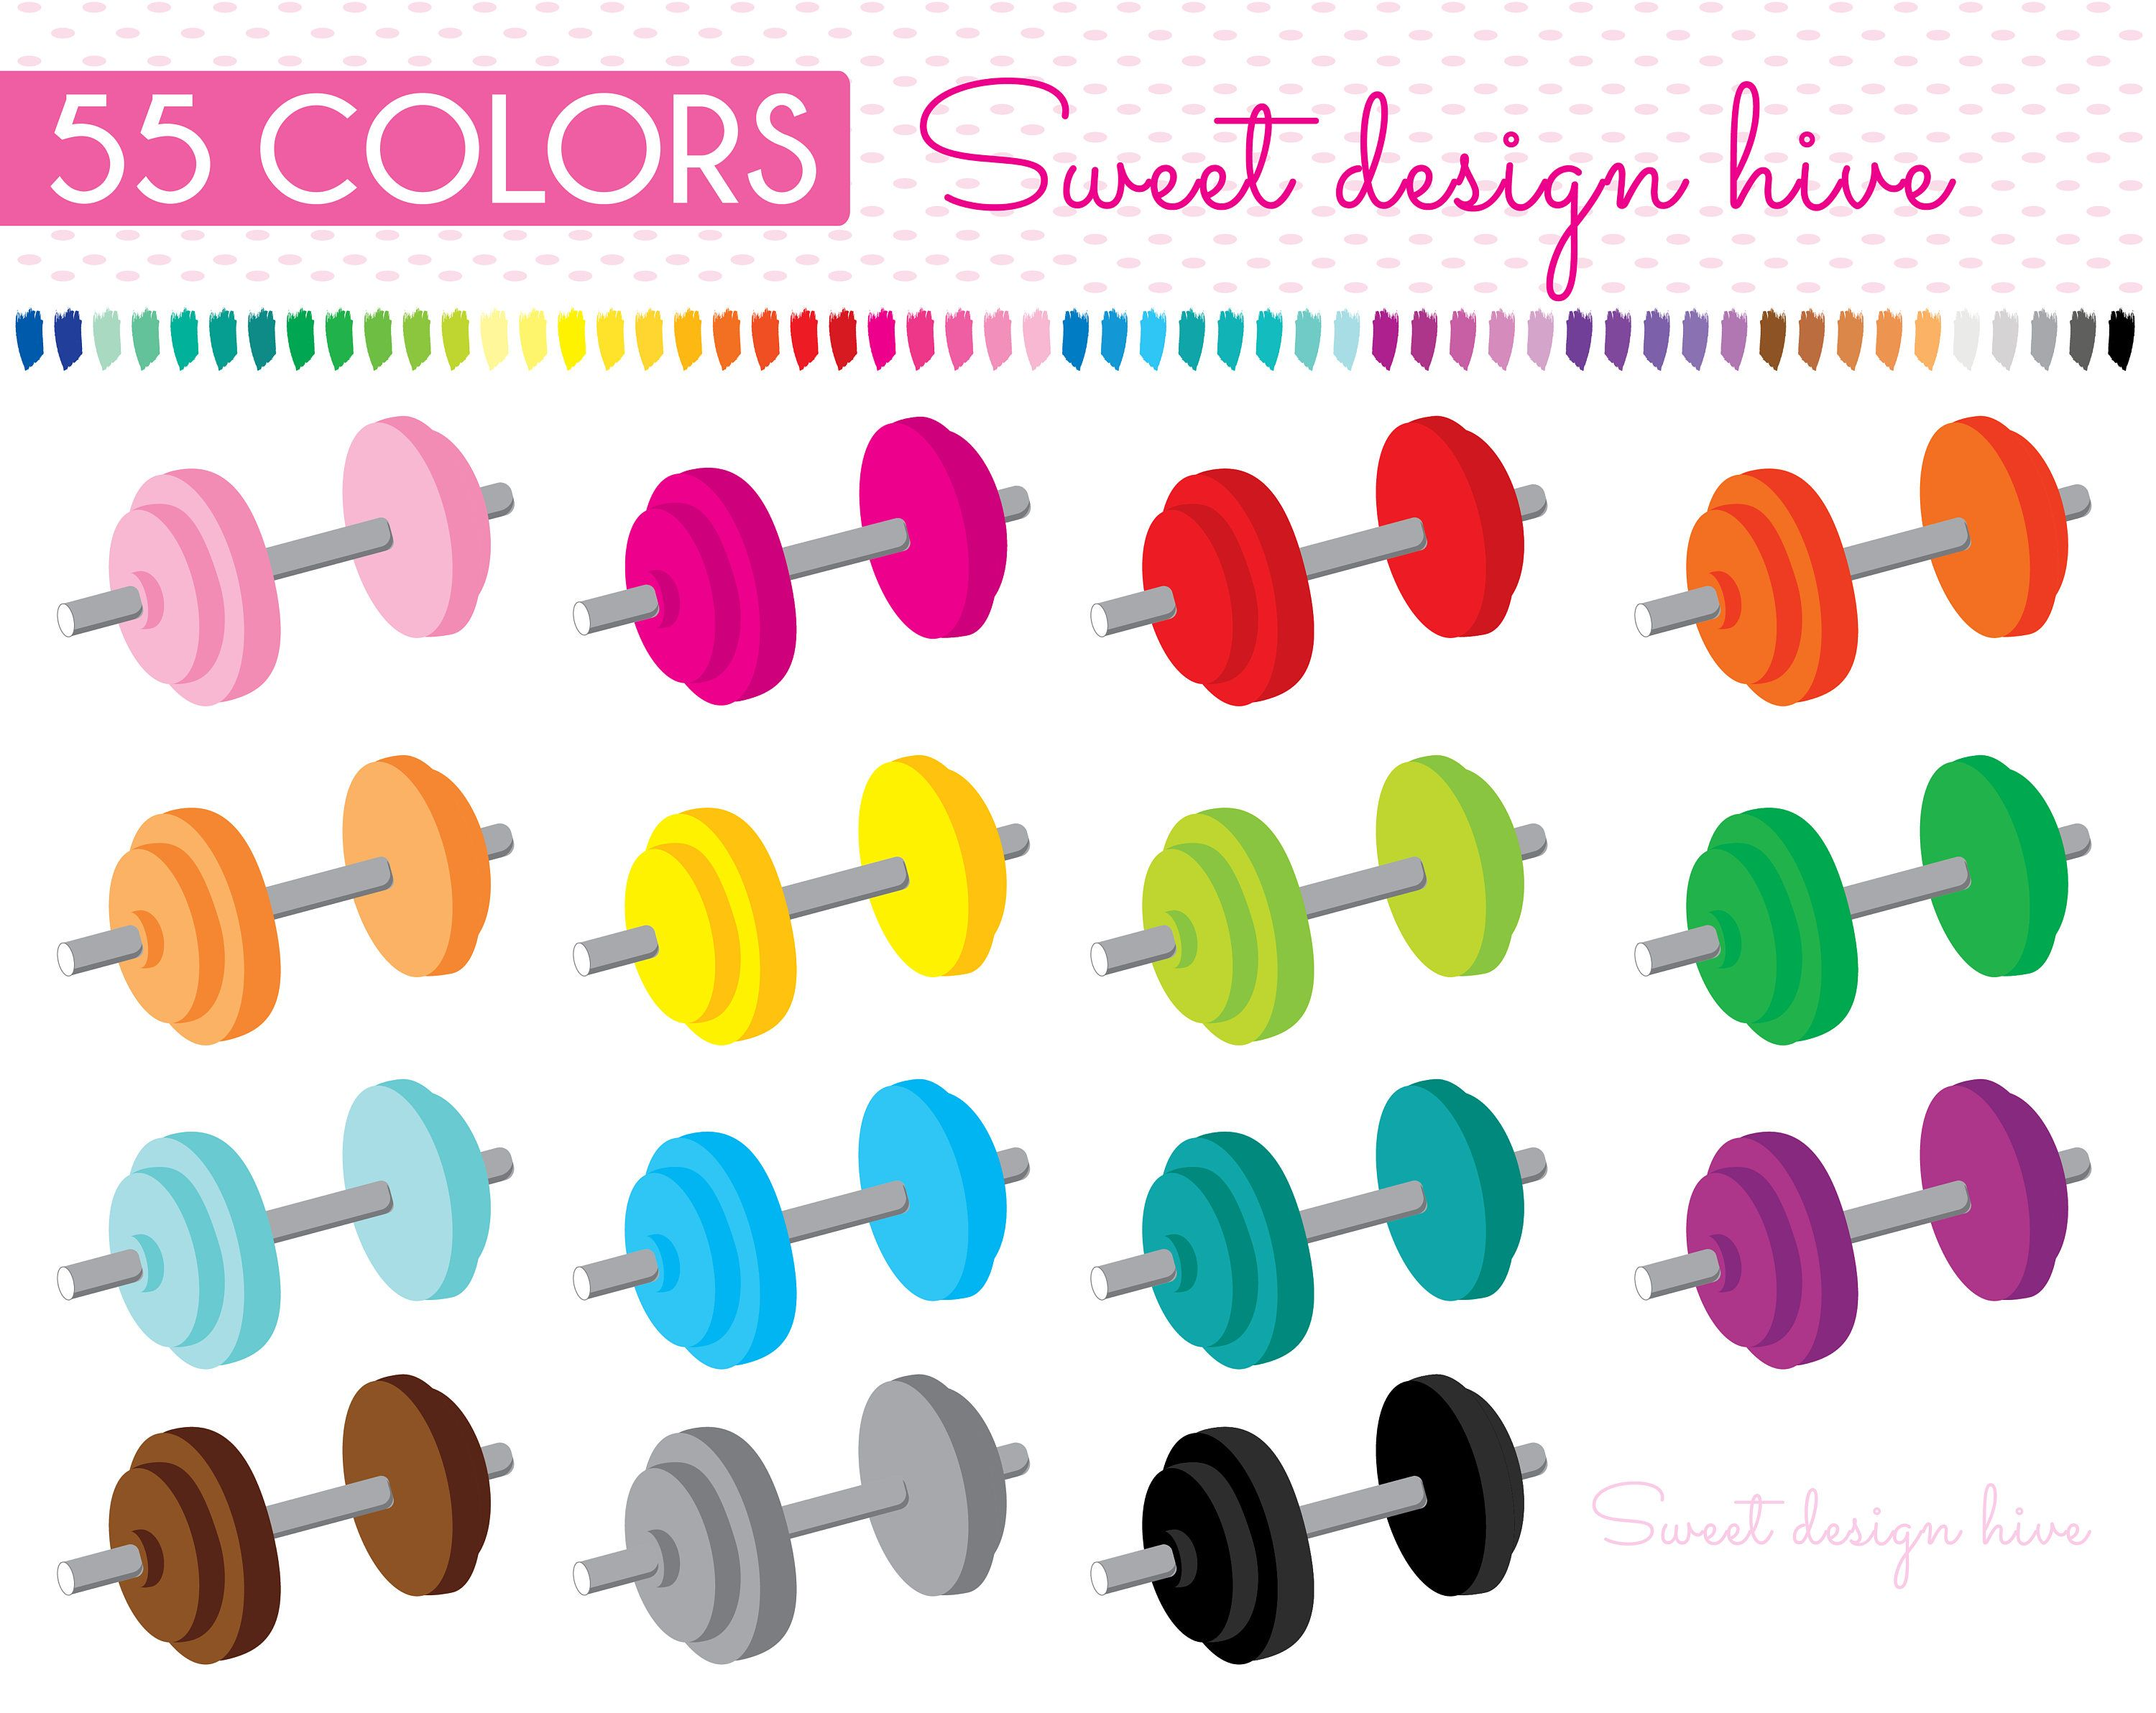 hight resolution of dumbbell clipart weights fitness clipart gym clipart sports clipart workout clipart gym equipment fitness planner stickers pl0088 by sweetdesignhive